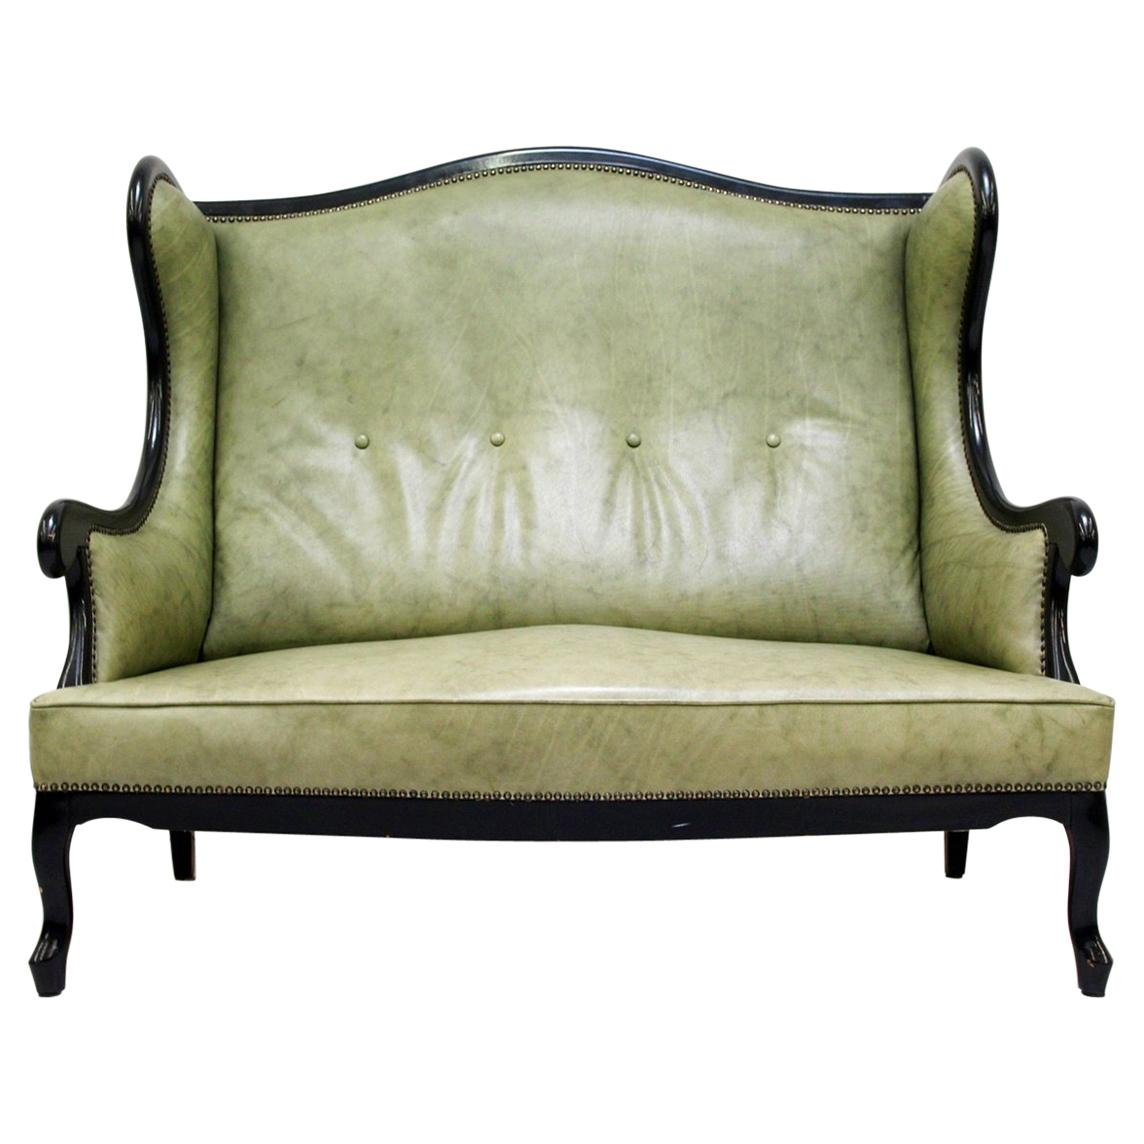 Vintage couch Yellow Chippendale Sofa Leather Antique Vintage Couch English Leather Sofa Alt Offerup Chesterfield English Sofa Leather Antique Vintage Couch Chippendale